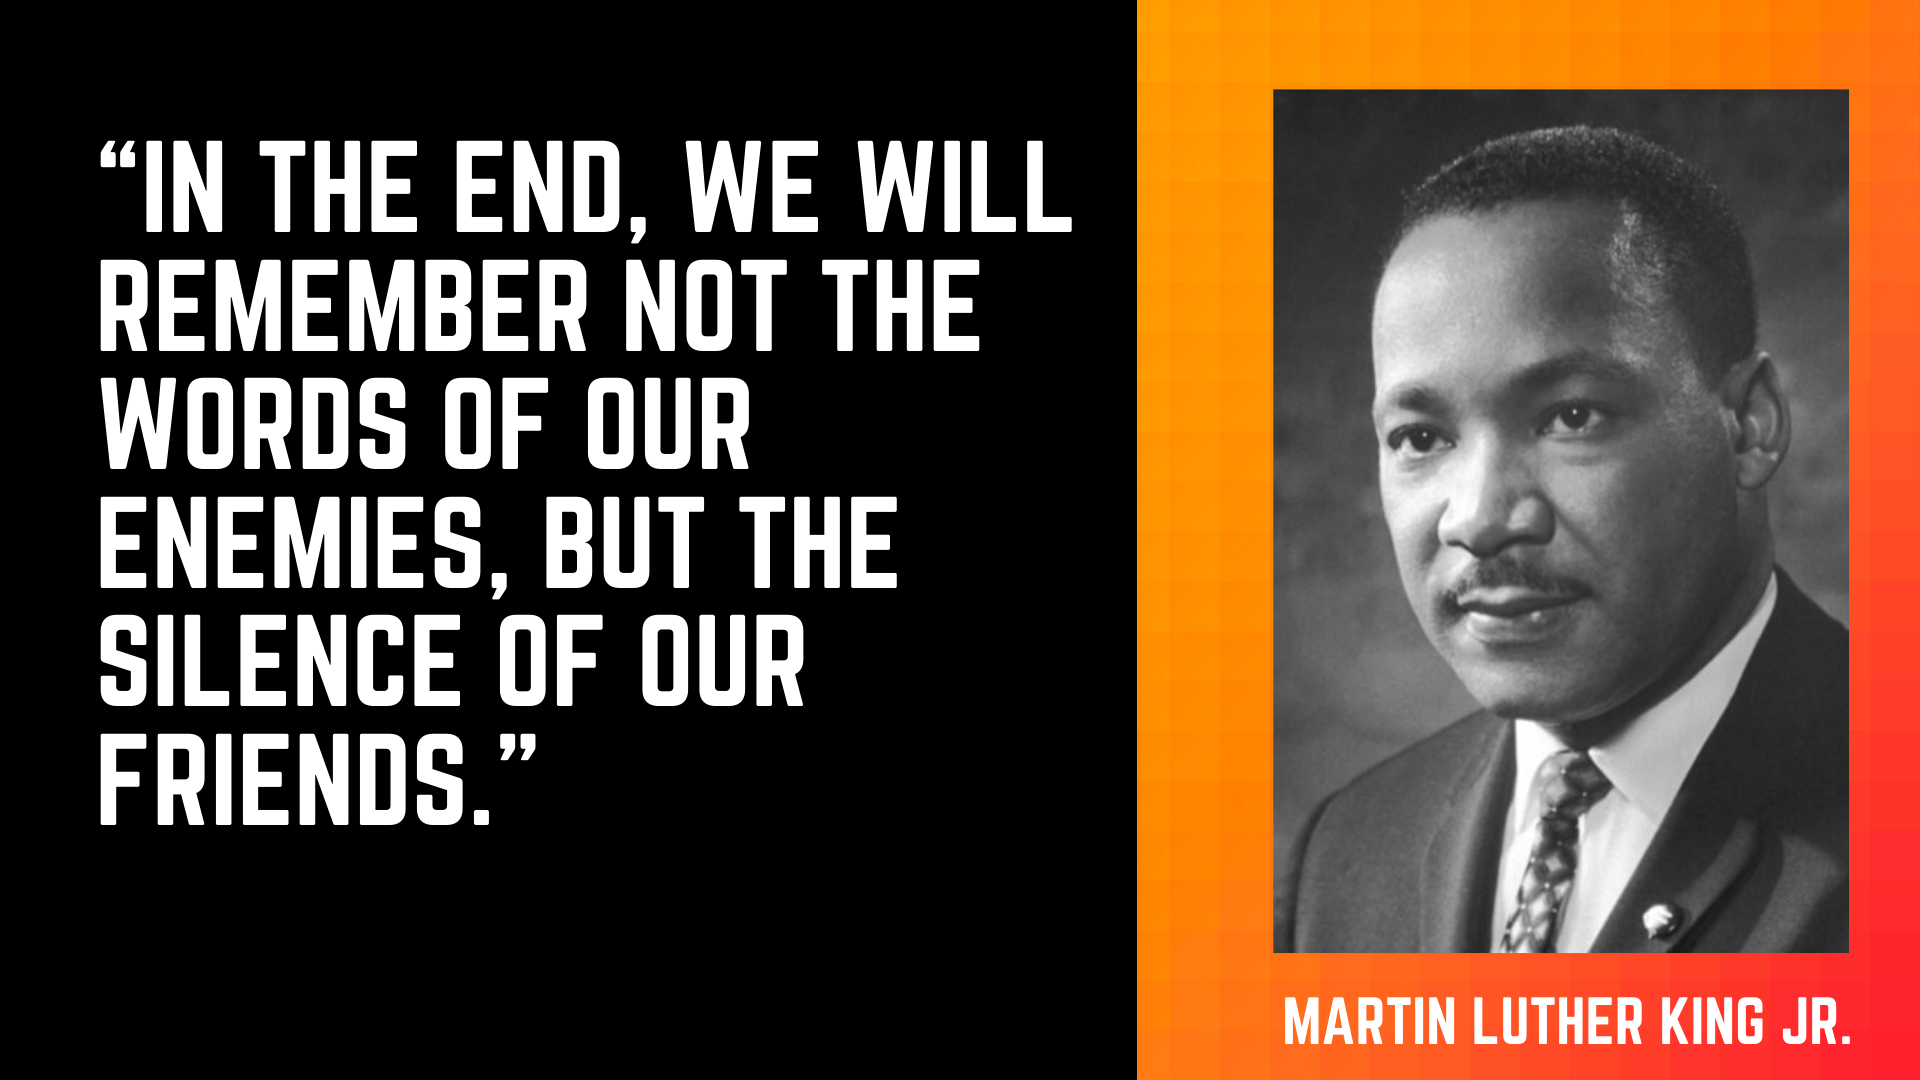 Martin Luther King Jr and quote